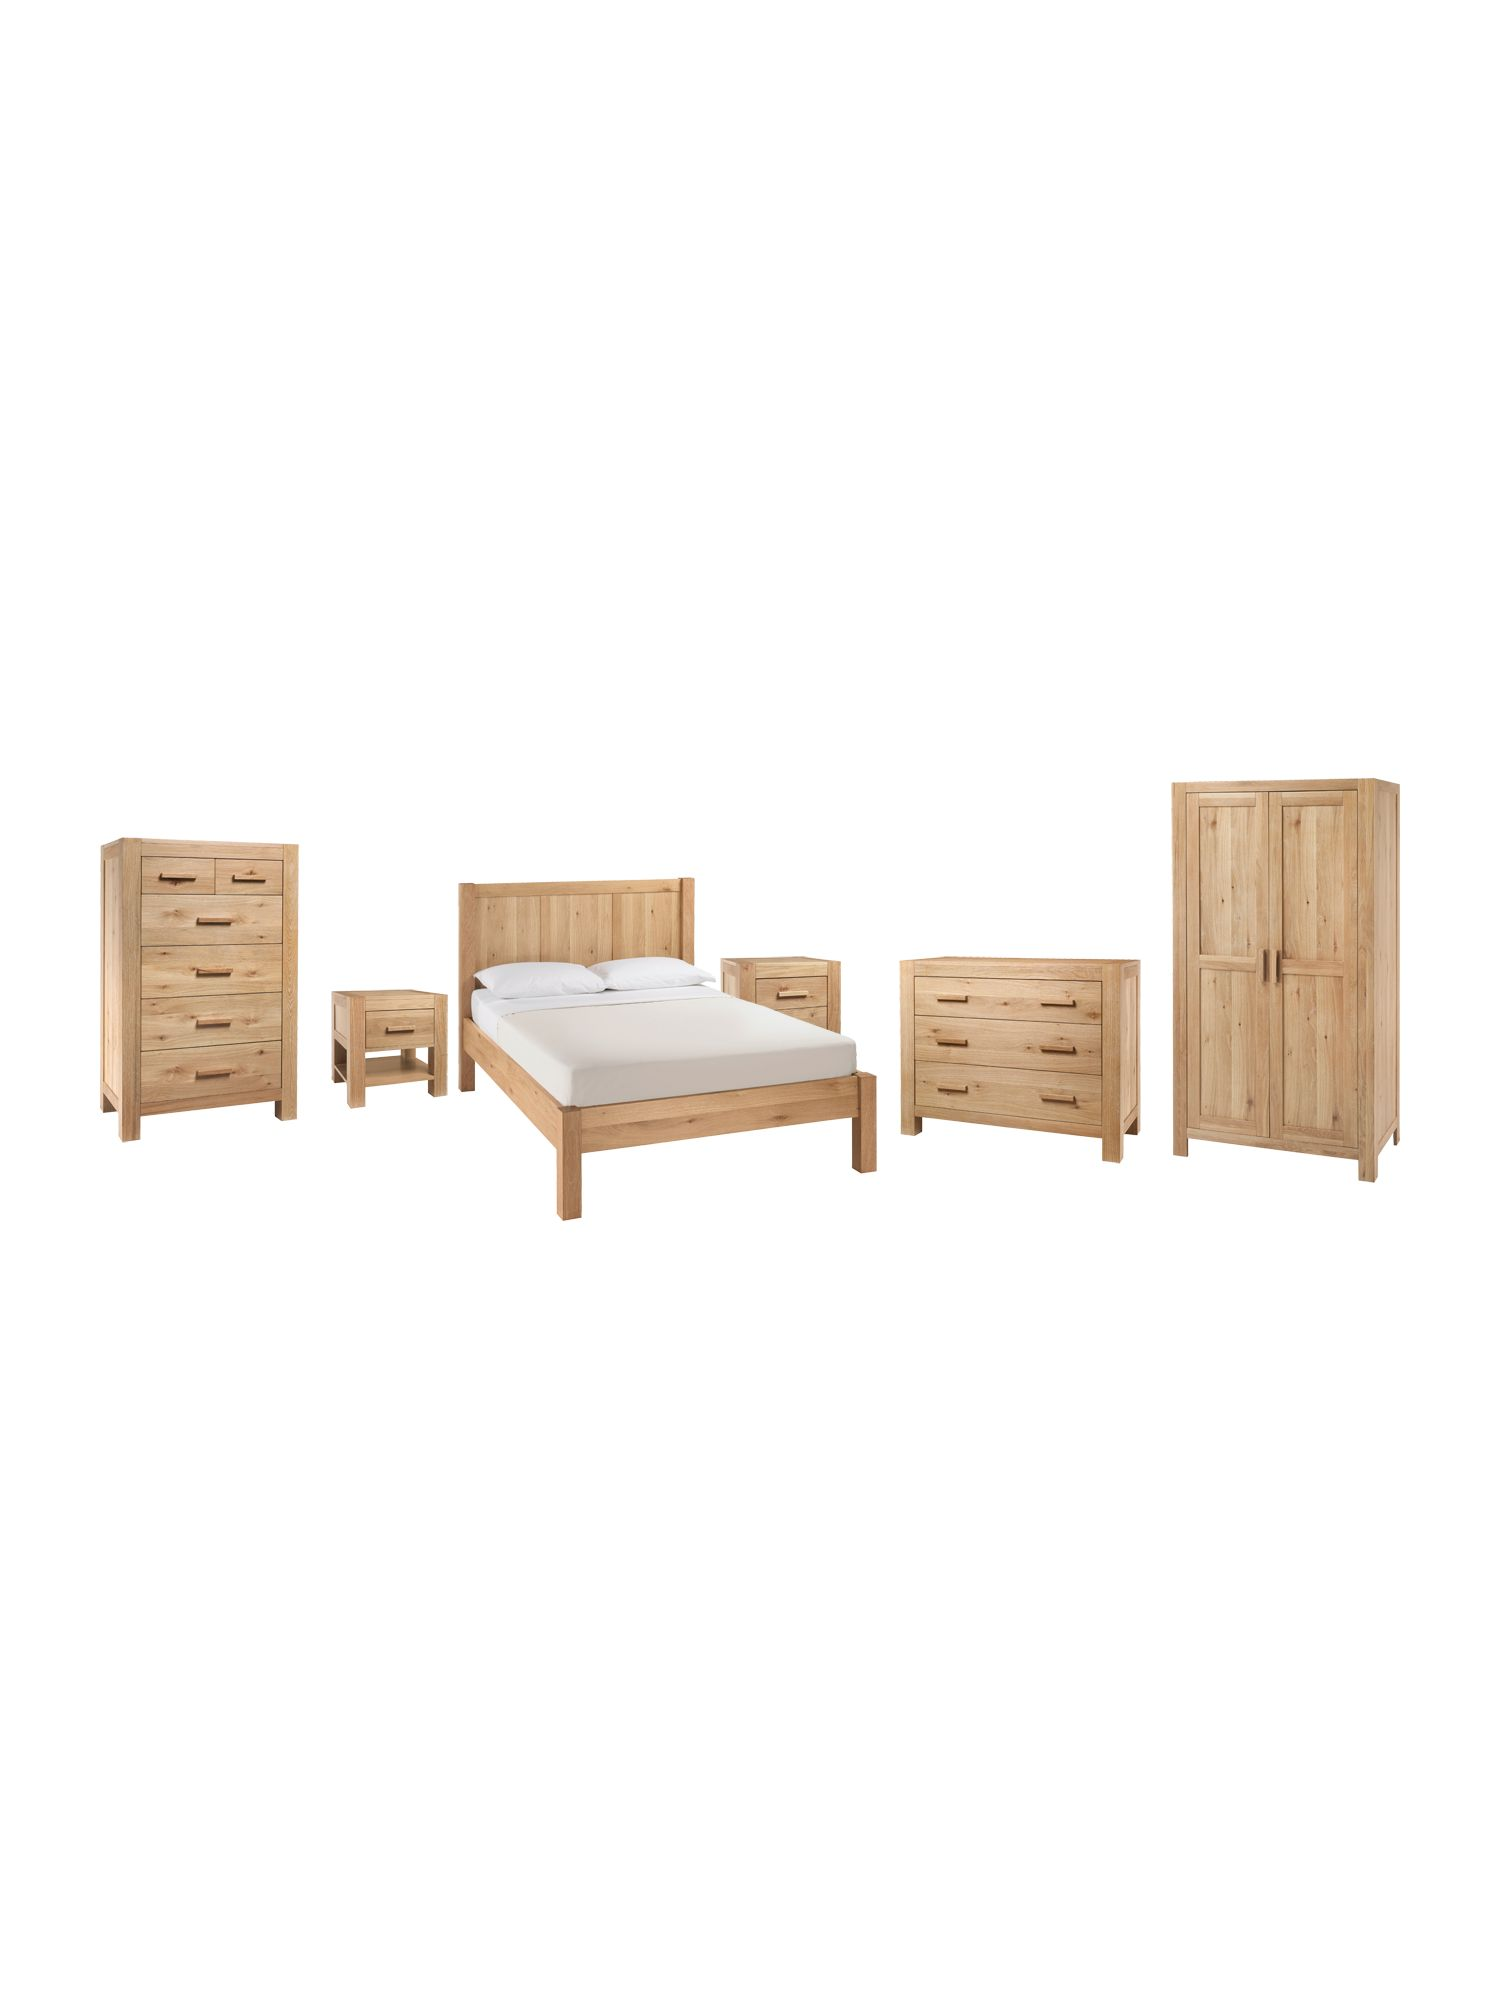 Rennes bedroom range